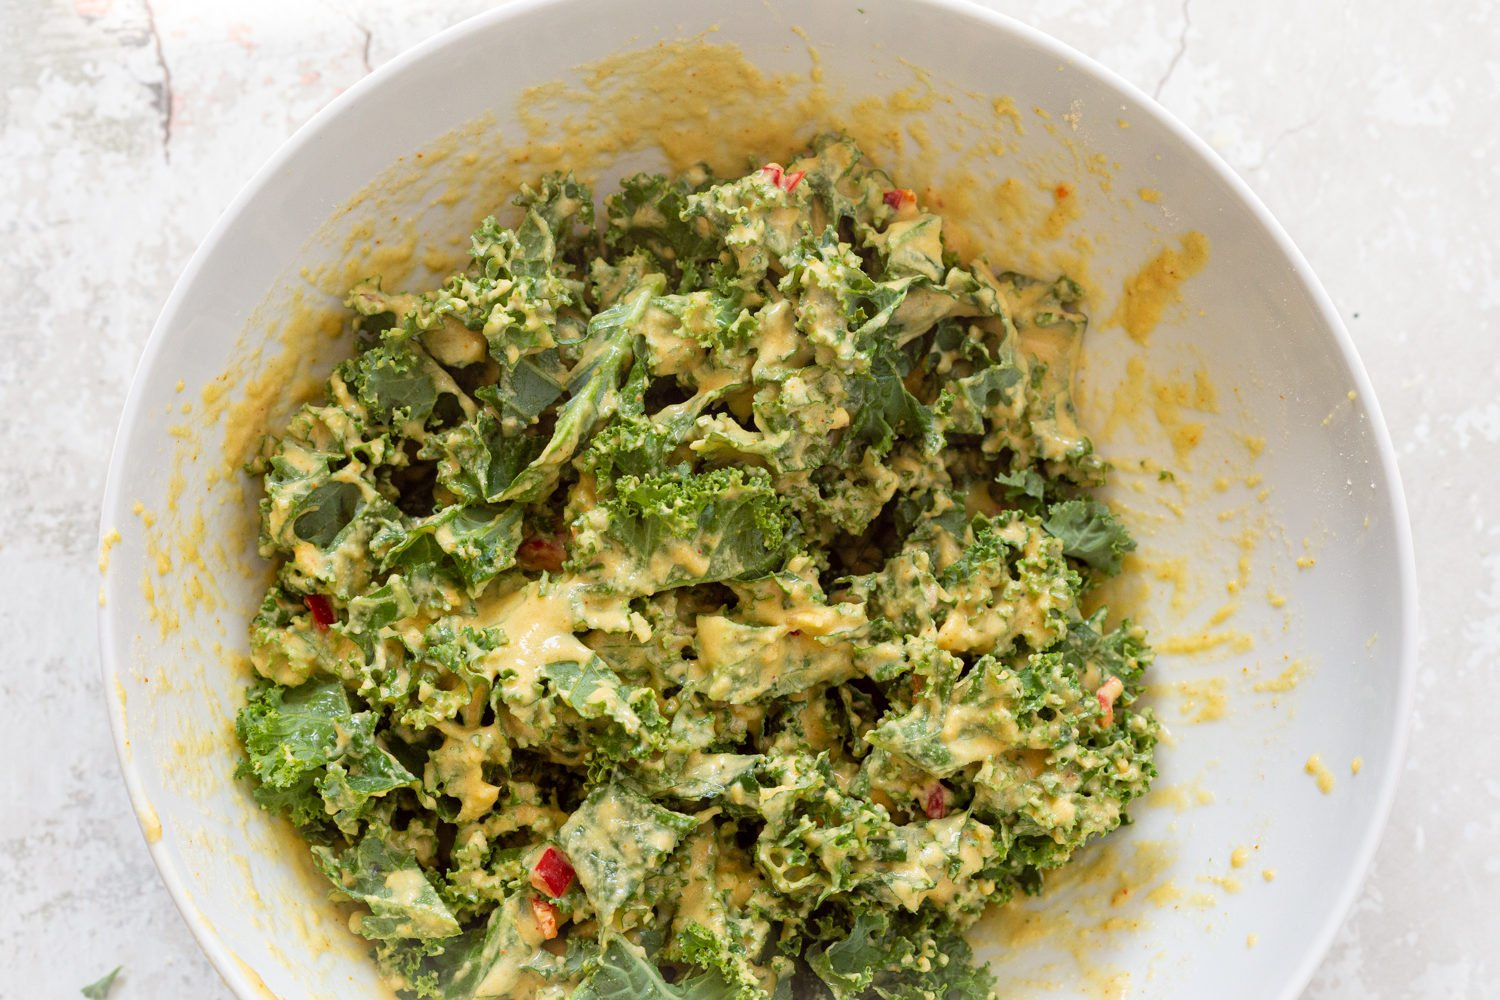 Kale leaves coated in batter, in a white bowl